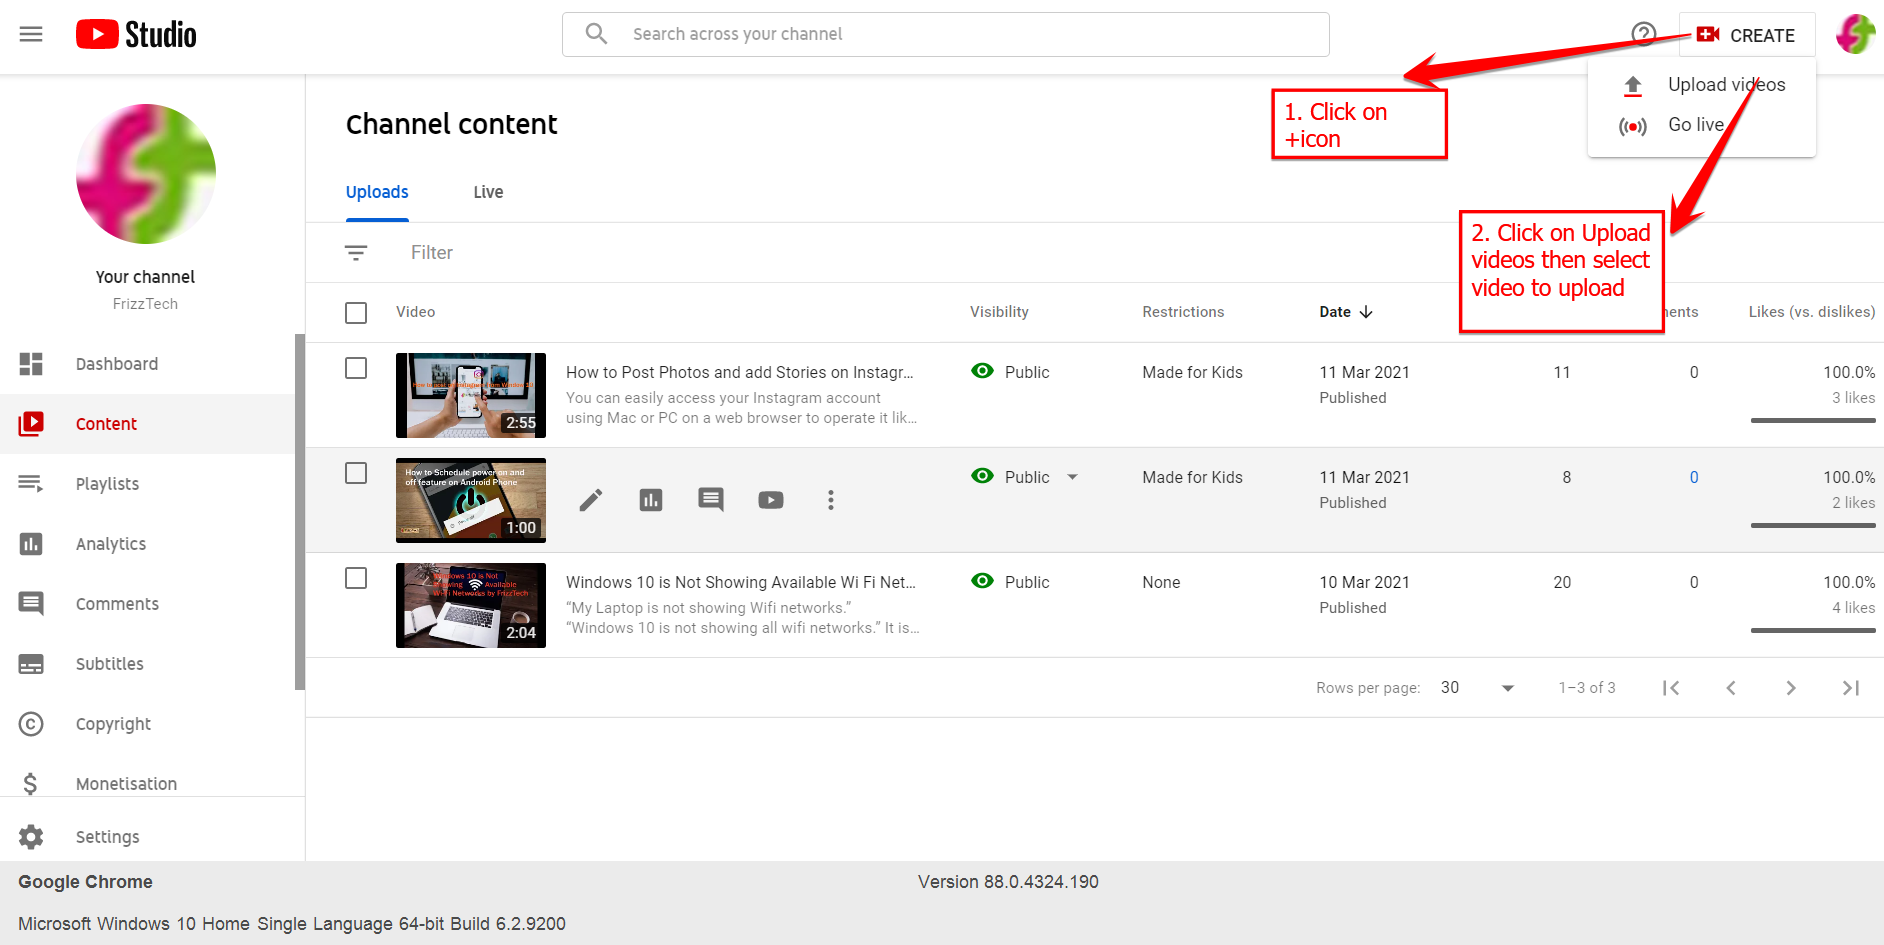 How to create a Youtube channel Step-by-Step Guide - Video Upload